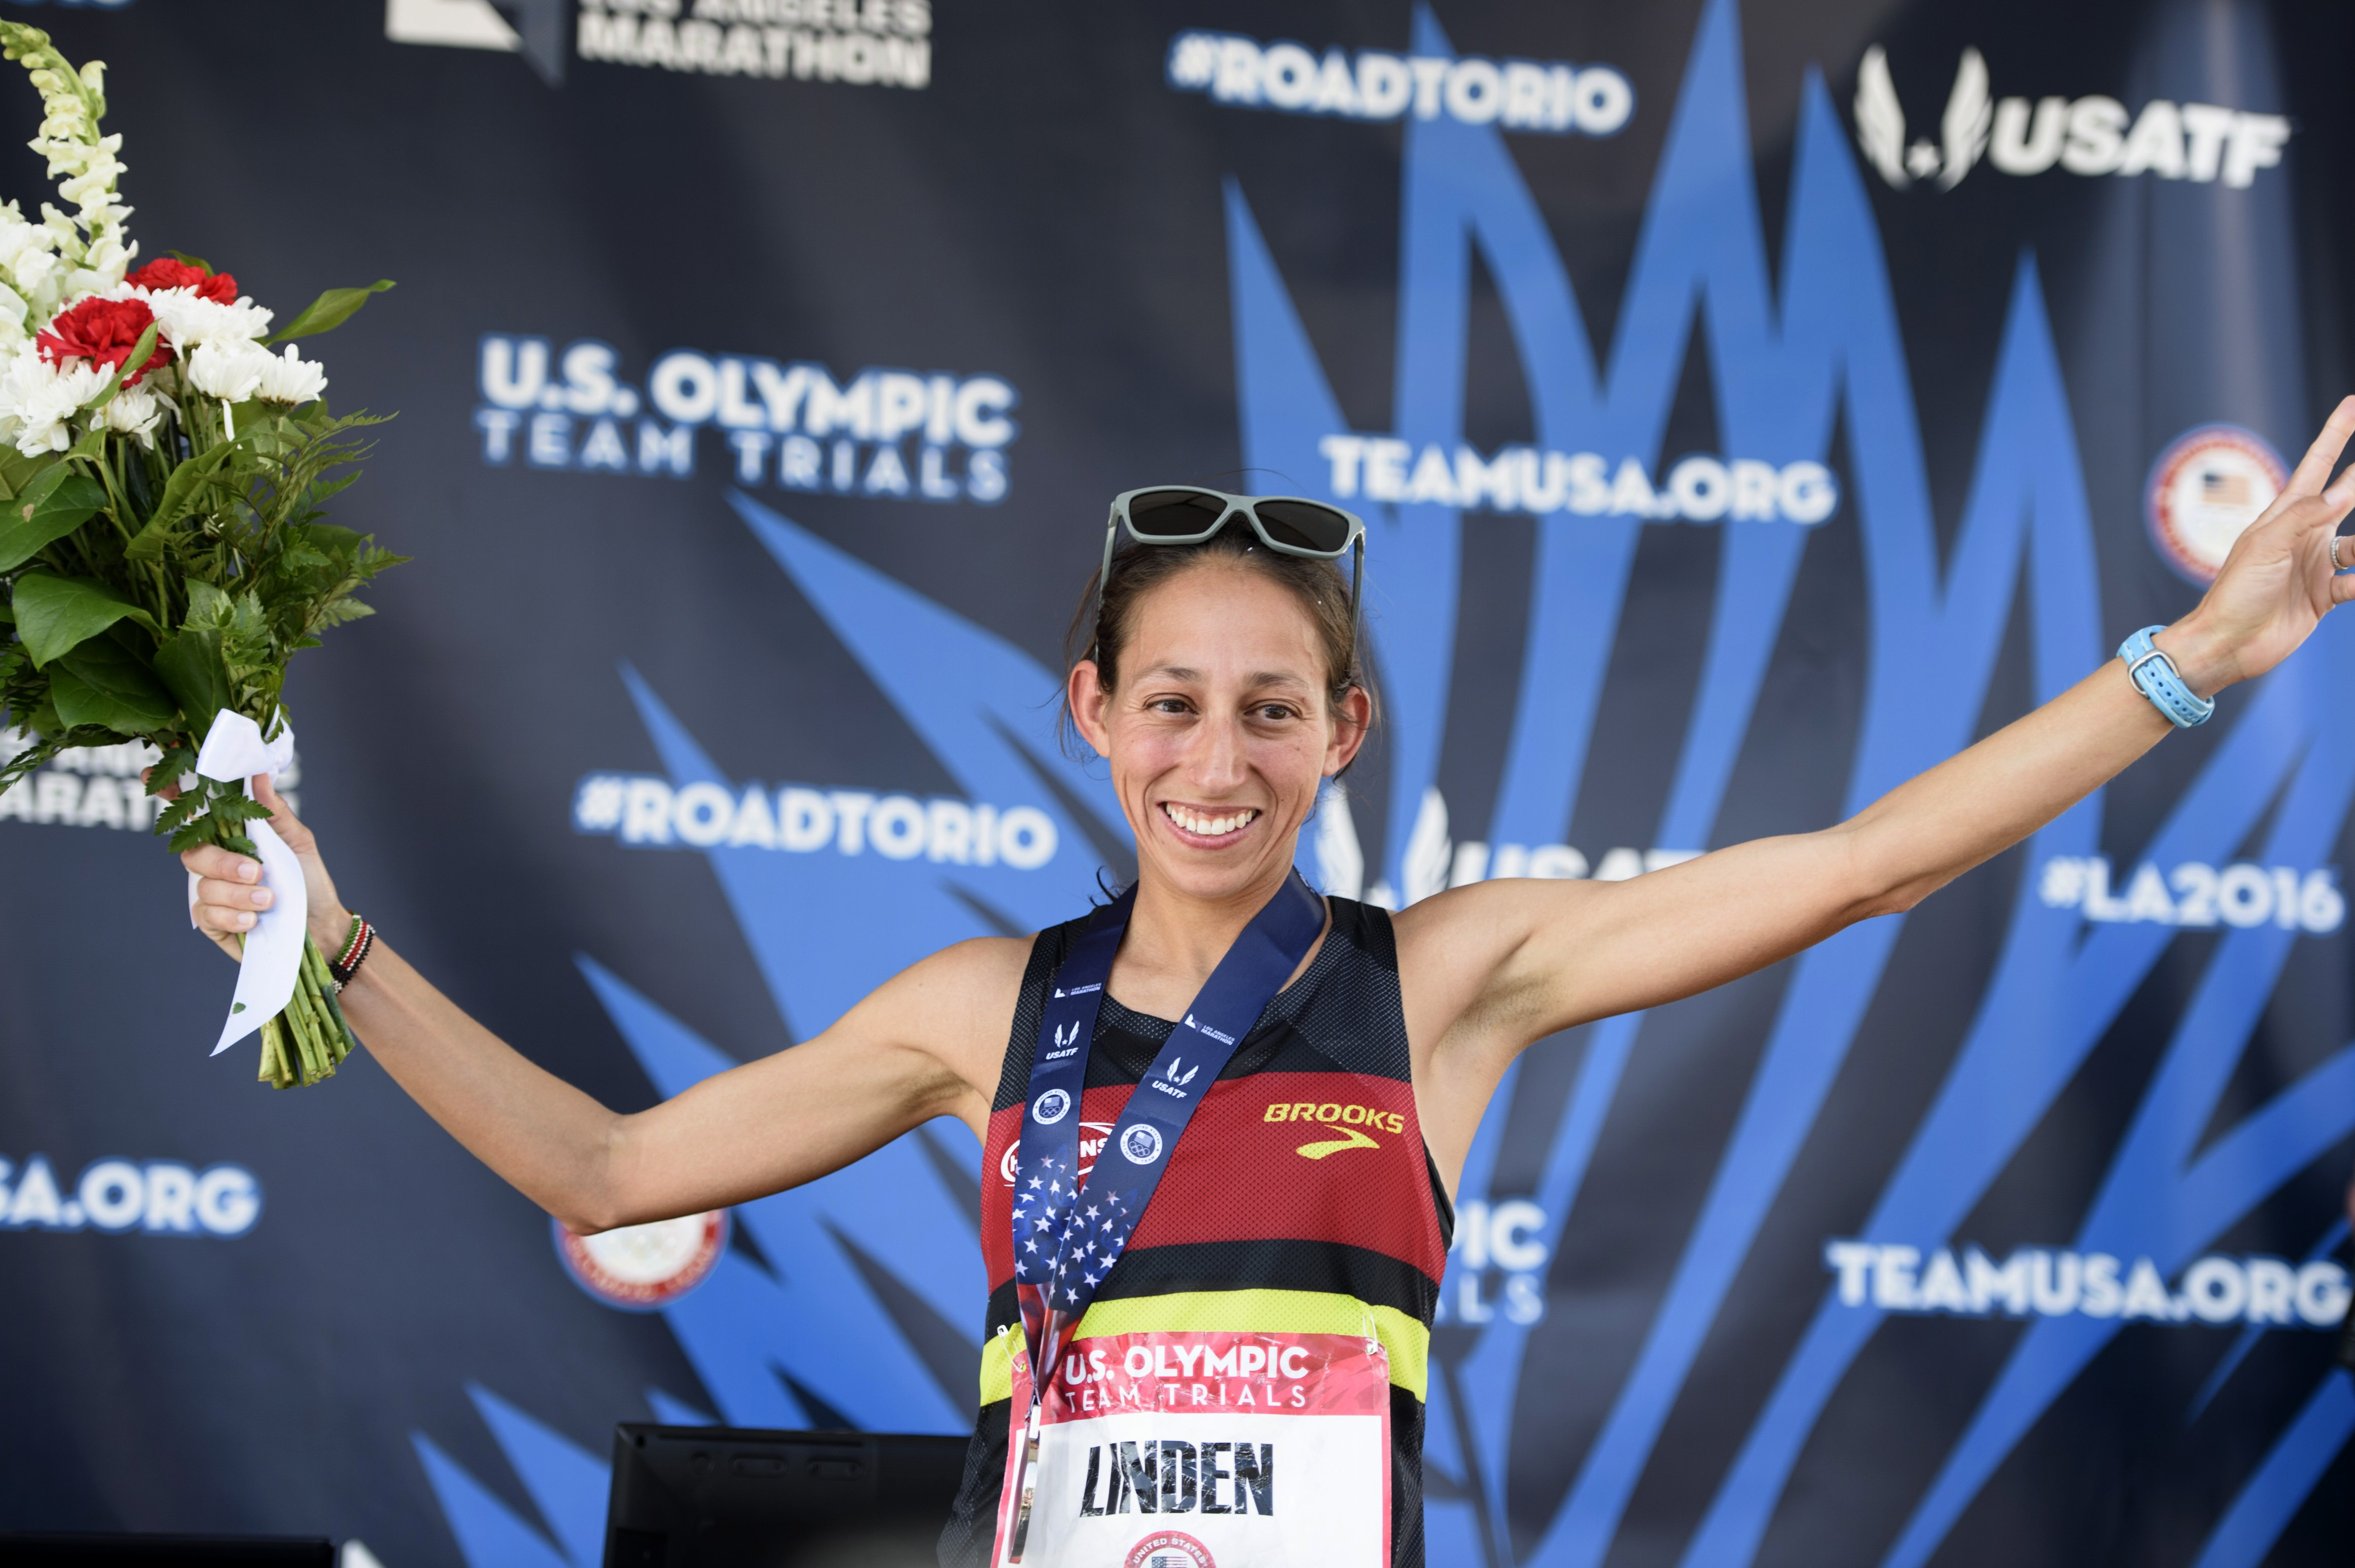 Desiree Linden reacts on the podium during the U.S. Olympic marathon trials, Saturday, Feb. 13, 2016, in Los Angeles. (AP Photo/Kelvin Kuo)